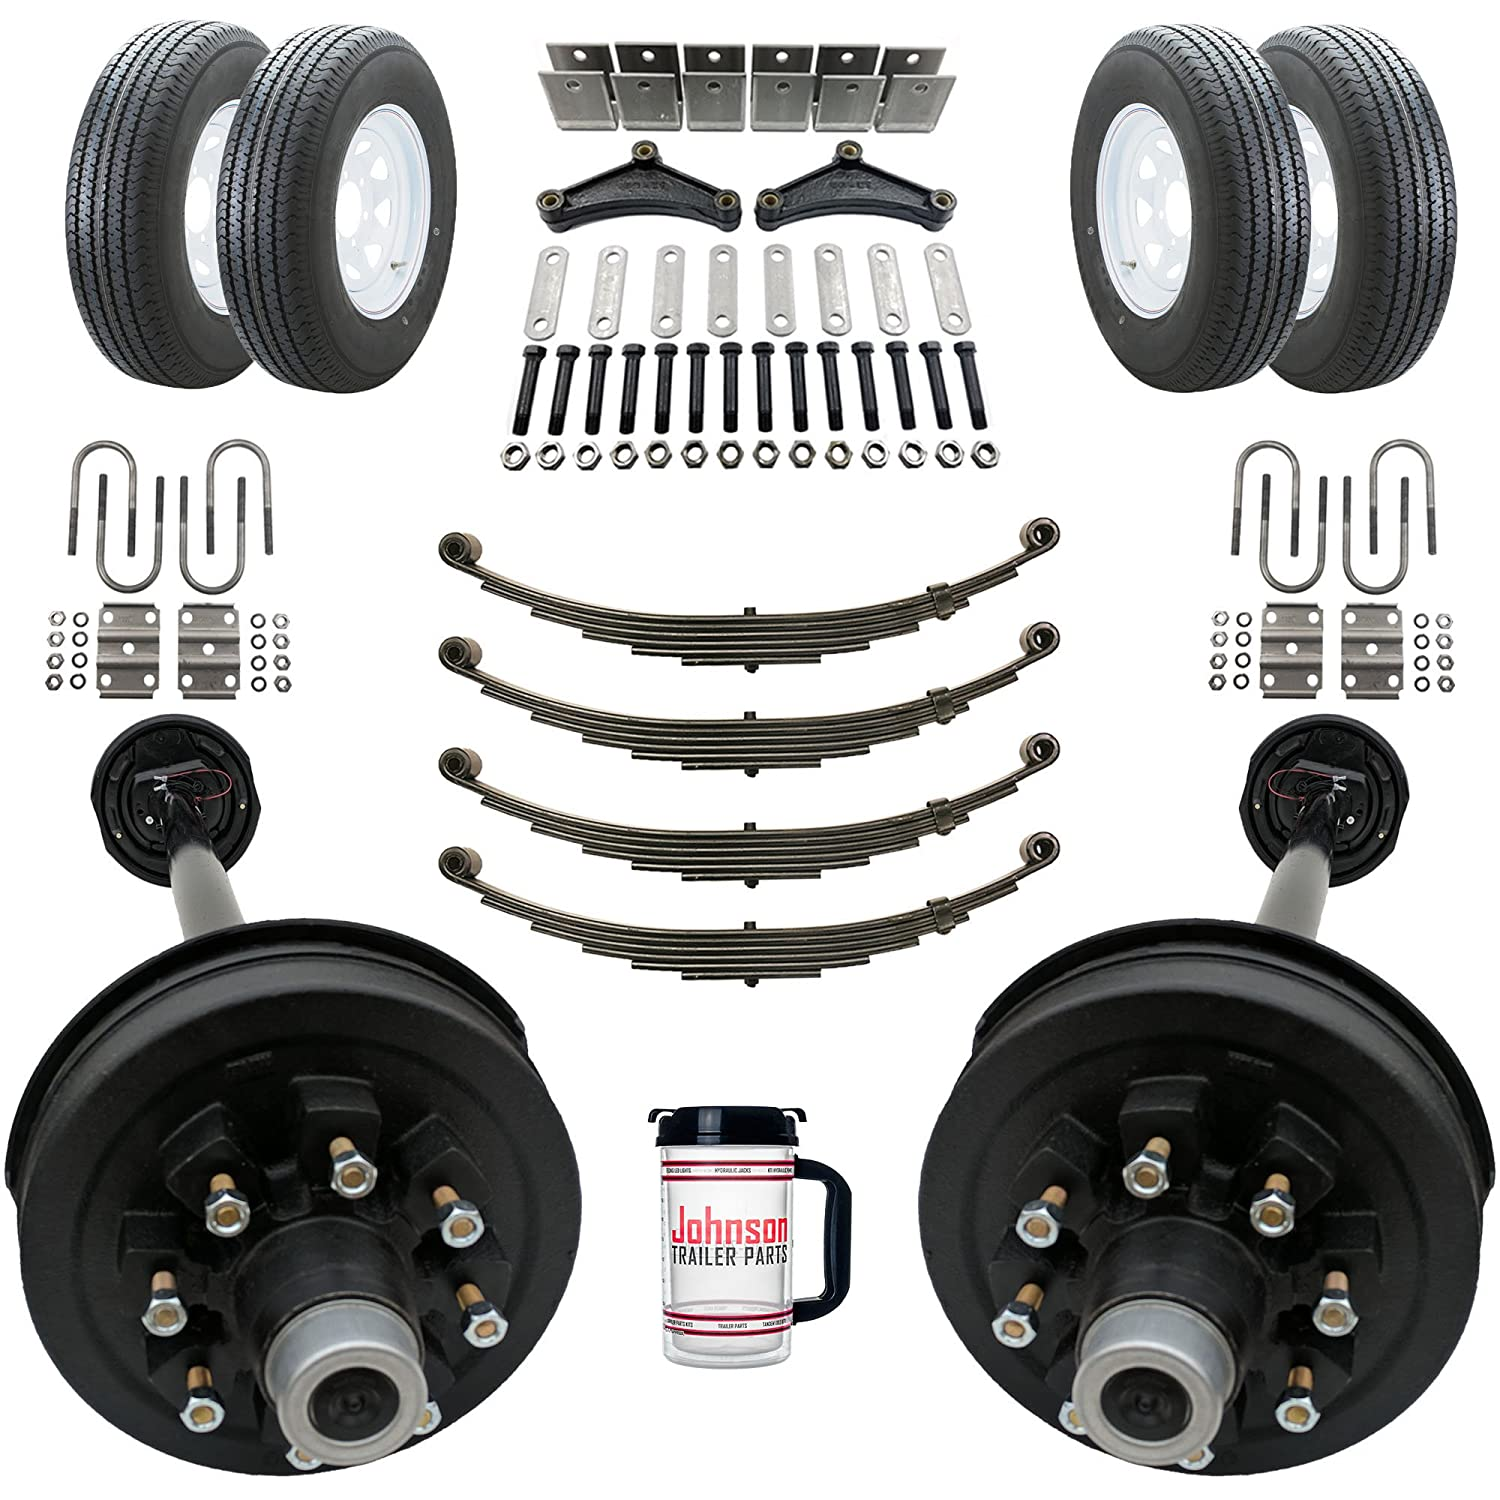 Rockwell American Tandem 7, 000 lb Electric Brake Trailer Axle Kits with Wheels and Tires - 8 Lug 6.5' Bolt Pattern - 14, 000 lb Capacity (94'/95' Hubface - 80' Spring Center) 000 lb Capacity (94/95 Hubface - 80 Spring Center)